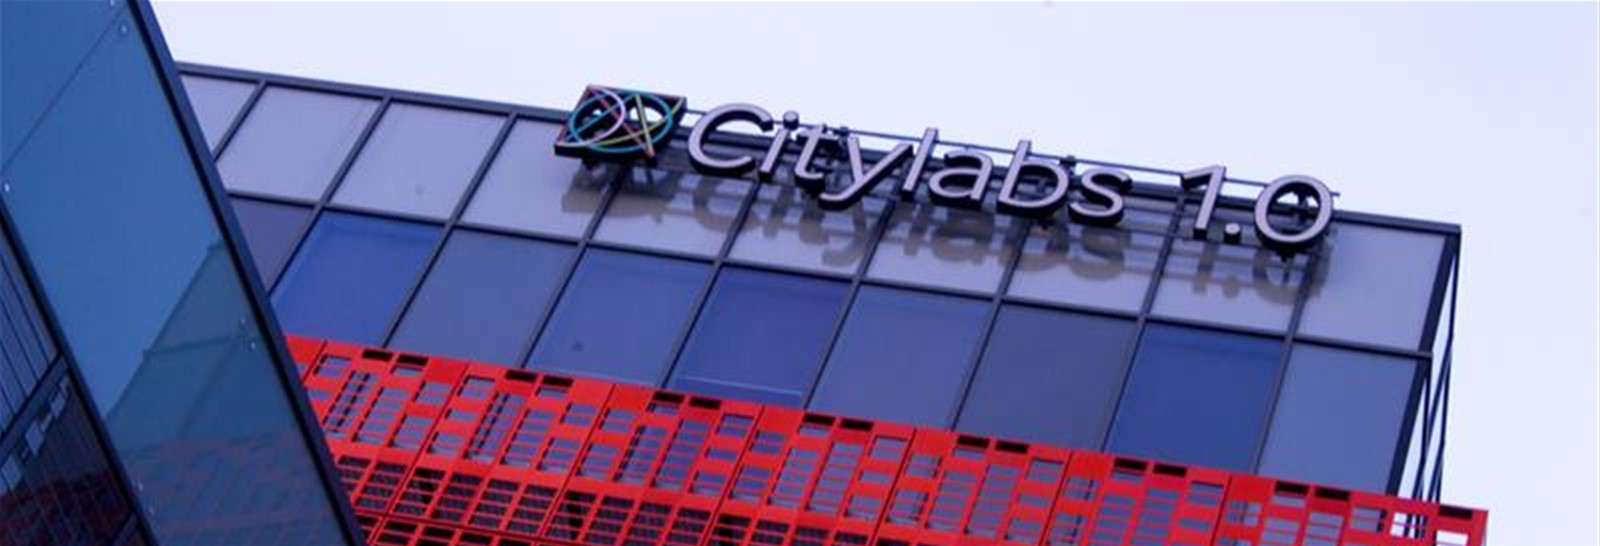 High level illuminated building sign for Manchester Citylabs 1.0